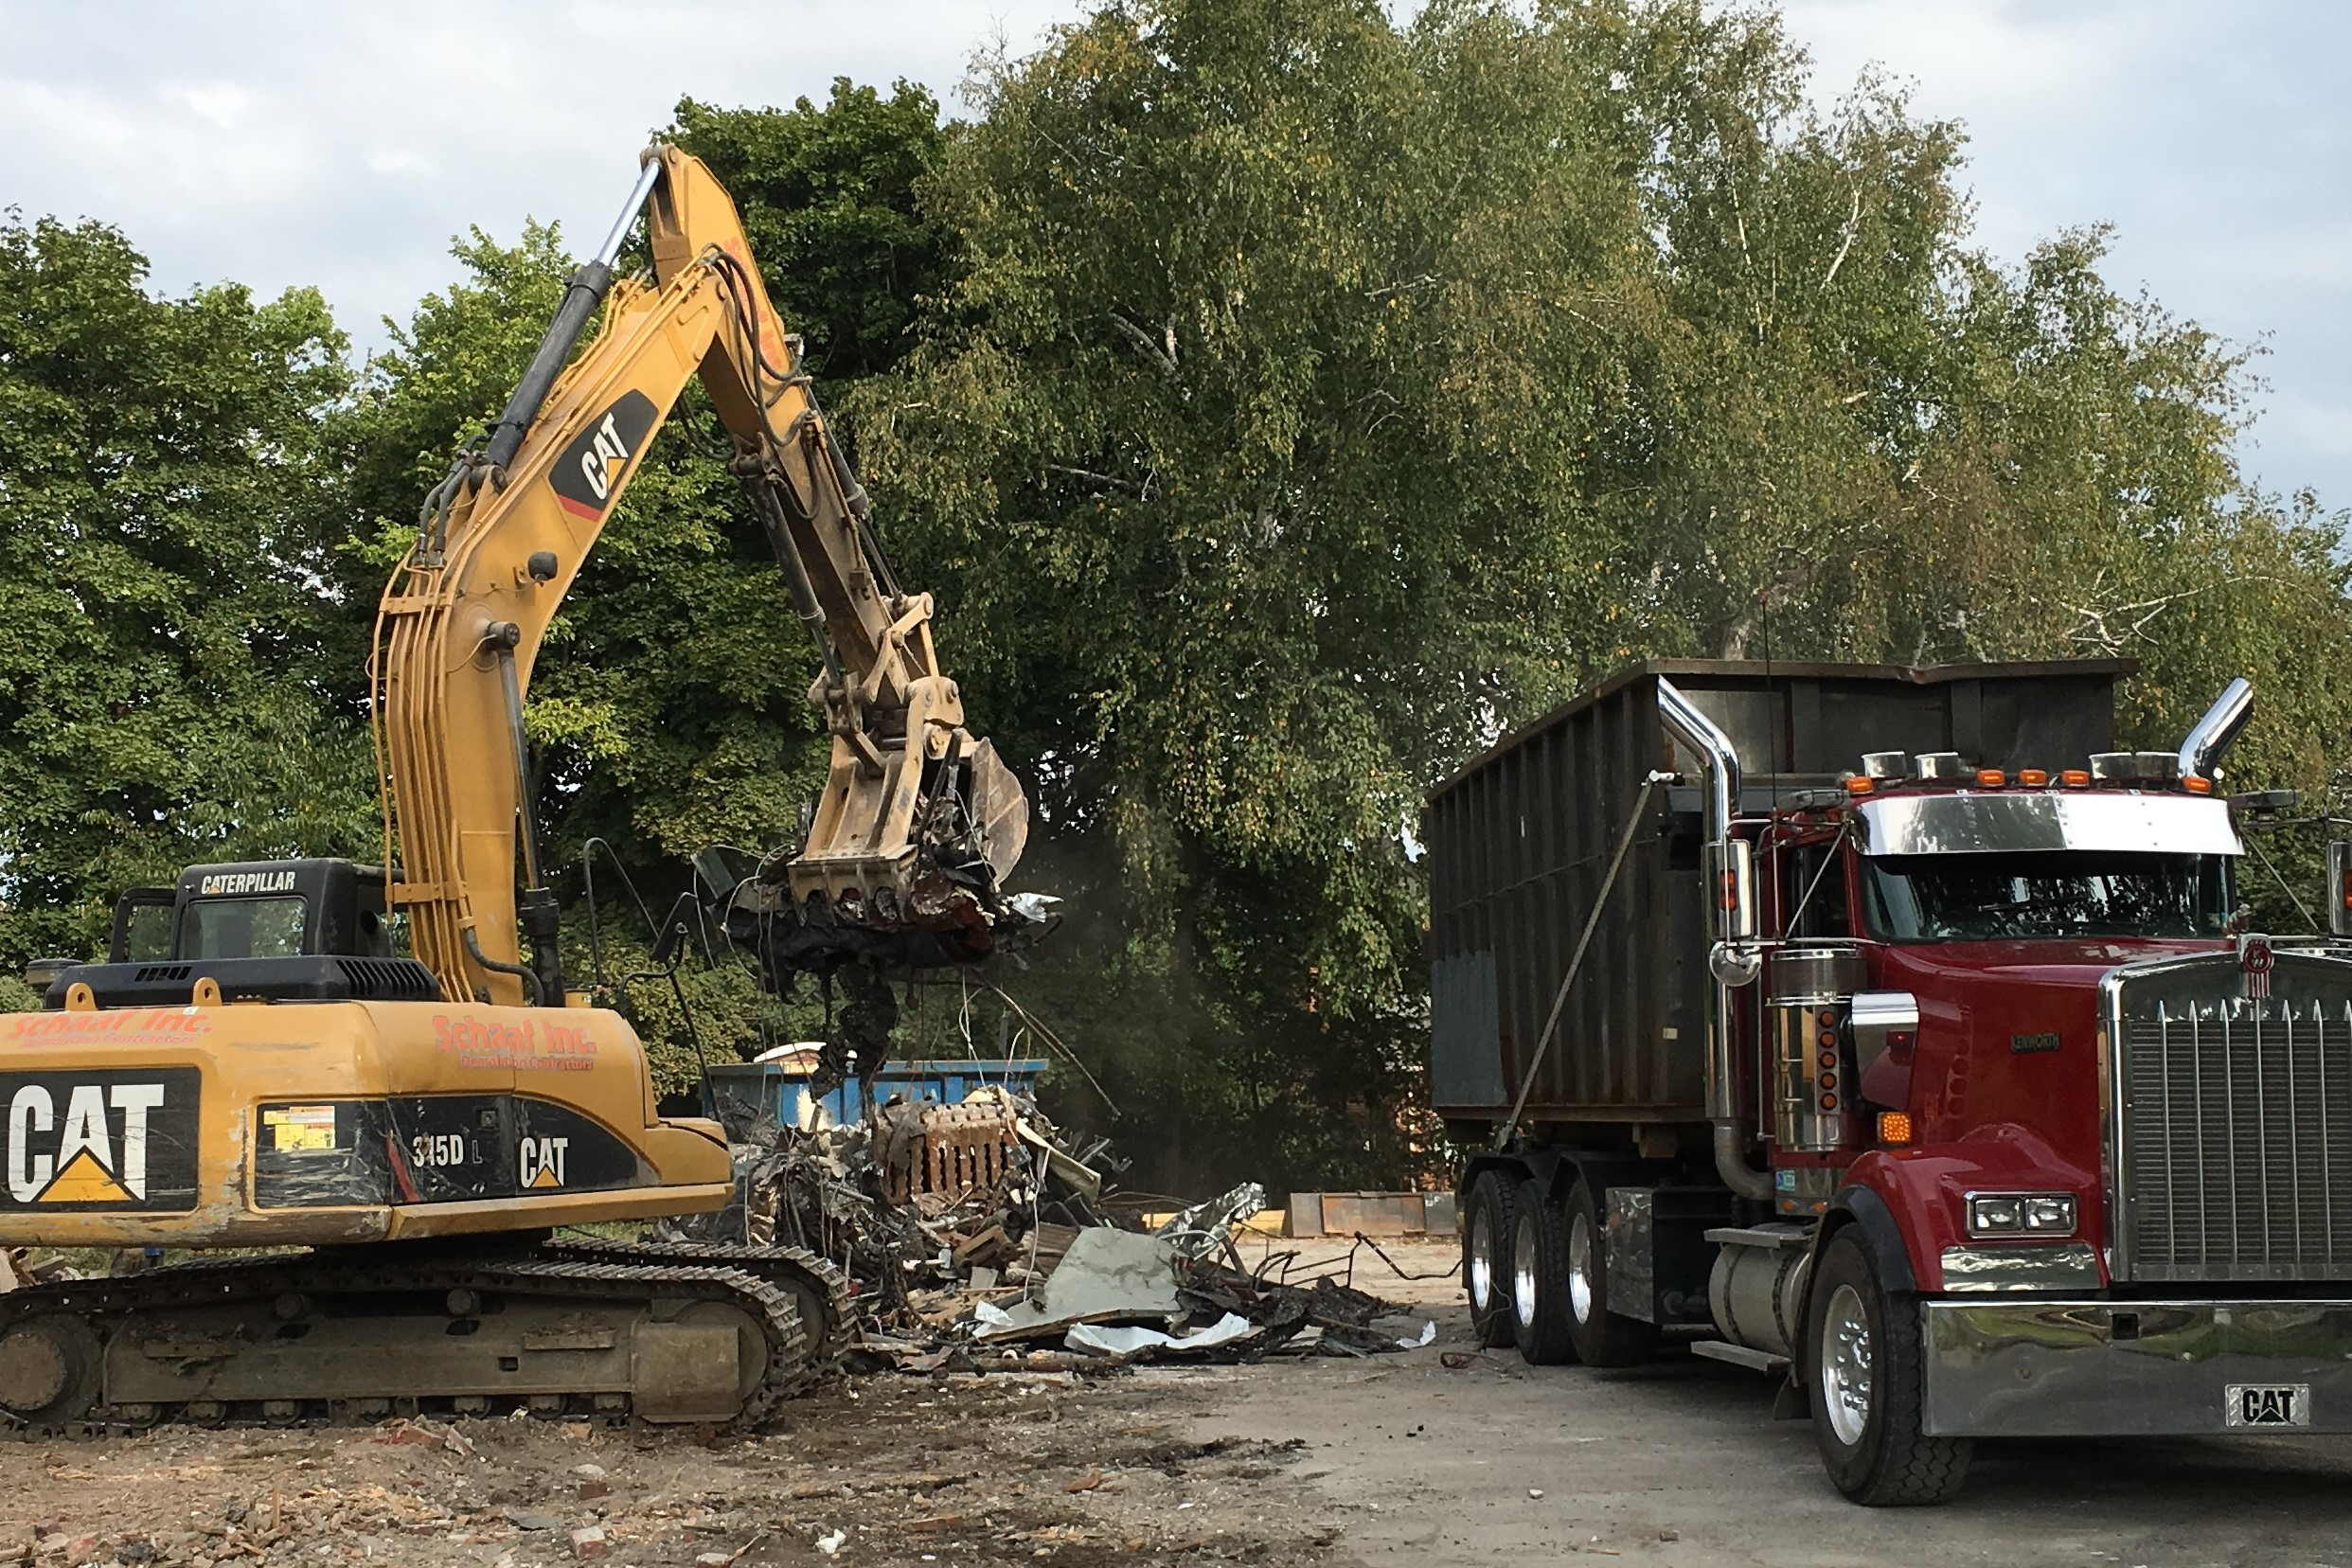 1609 Construction Loading Metal Scrap for Recycling